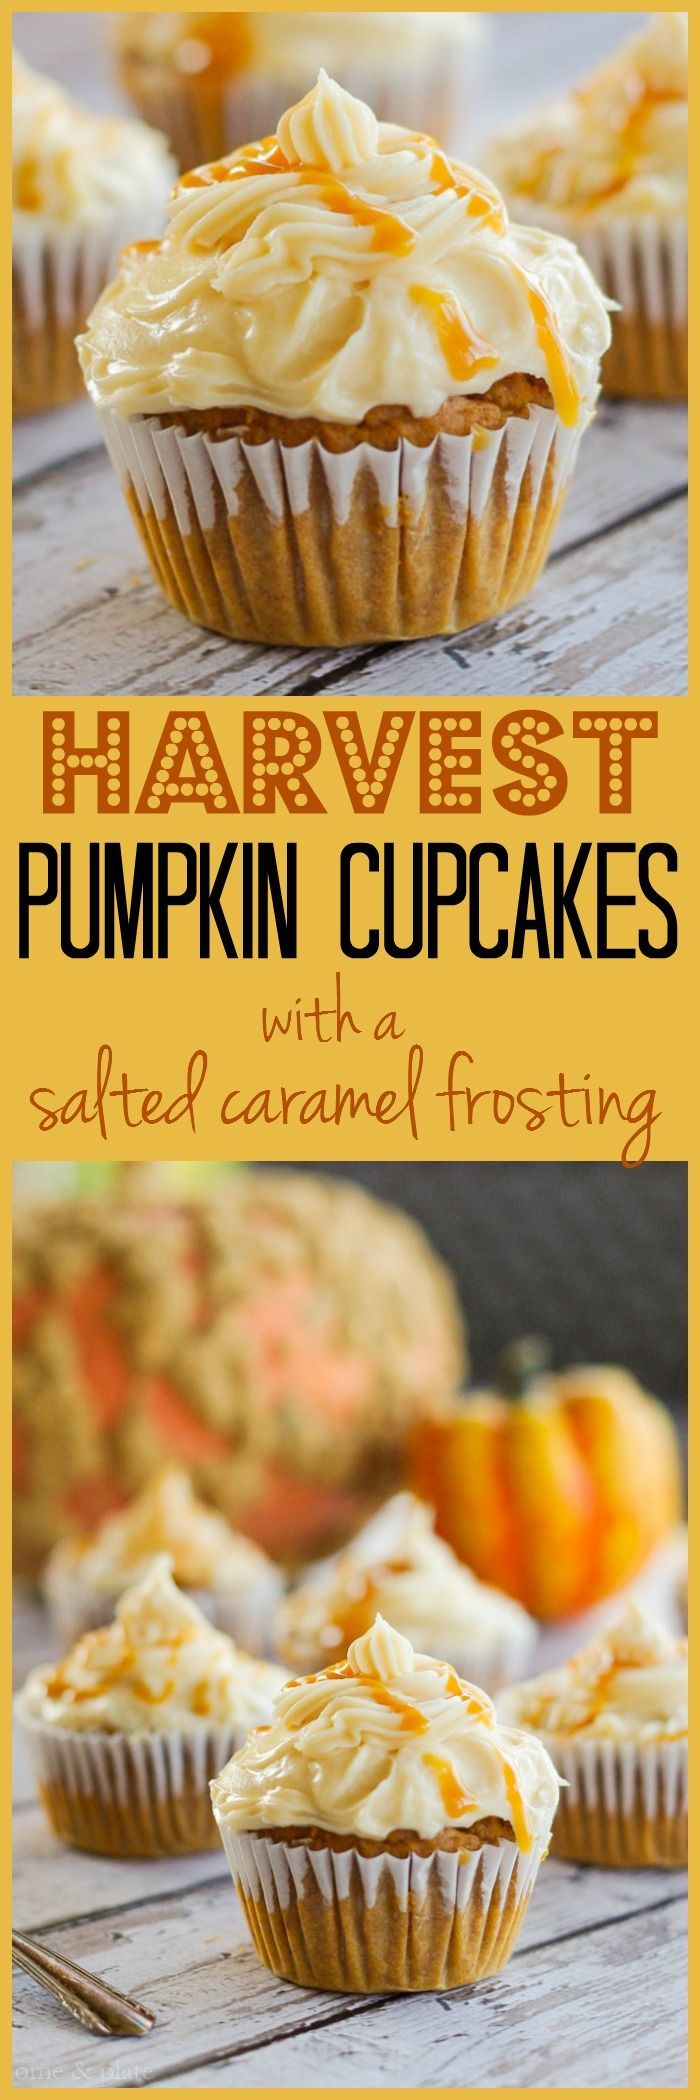 Harvest Pumpkin Cupcakes with a Salted Caramel Frosting | www.homeandplate.com | Sweet pumpkin. Salted caramel. Put the two together and you have heaven in a cup cake.